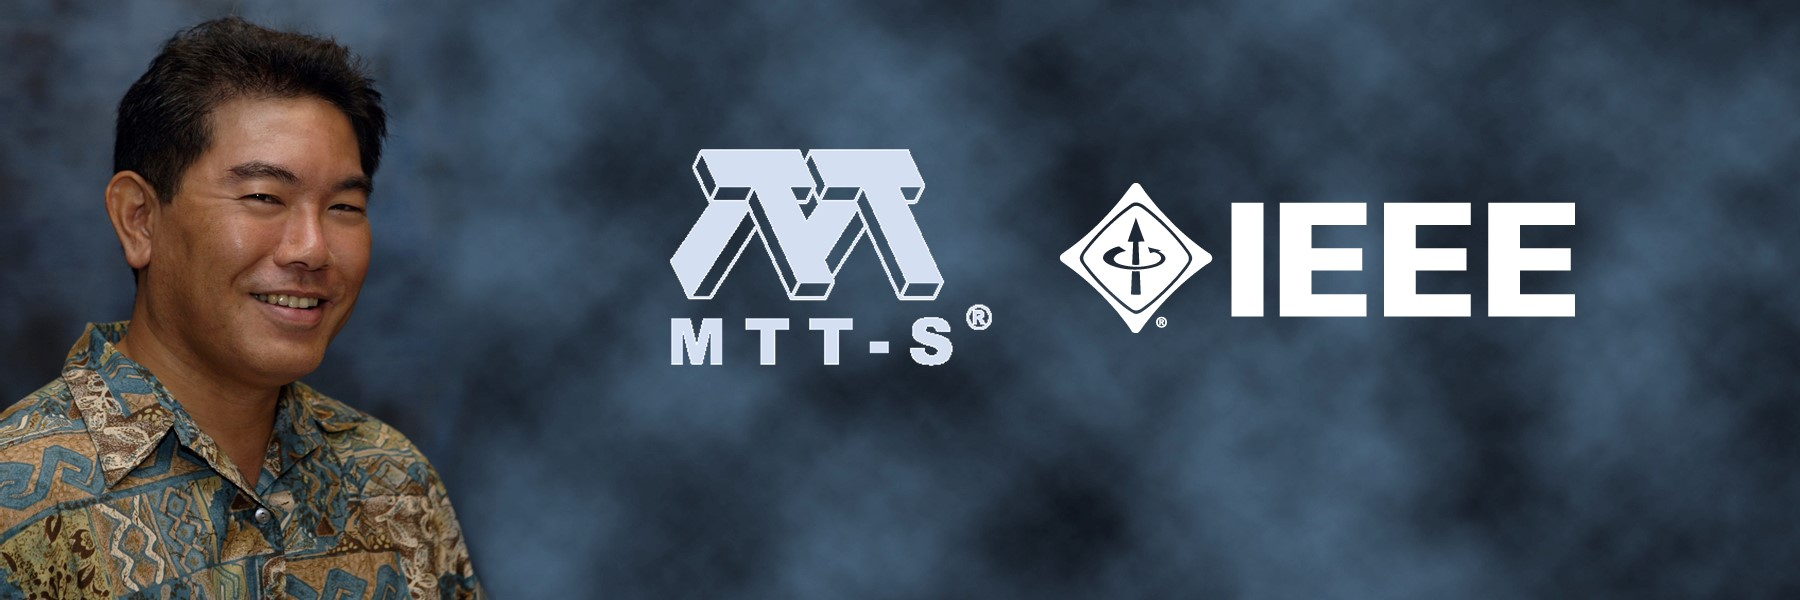 Prof. Shiroma with IEEE and MTT-S logos